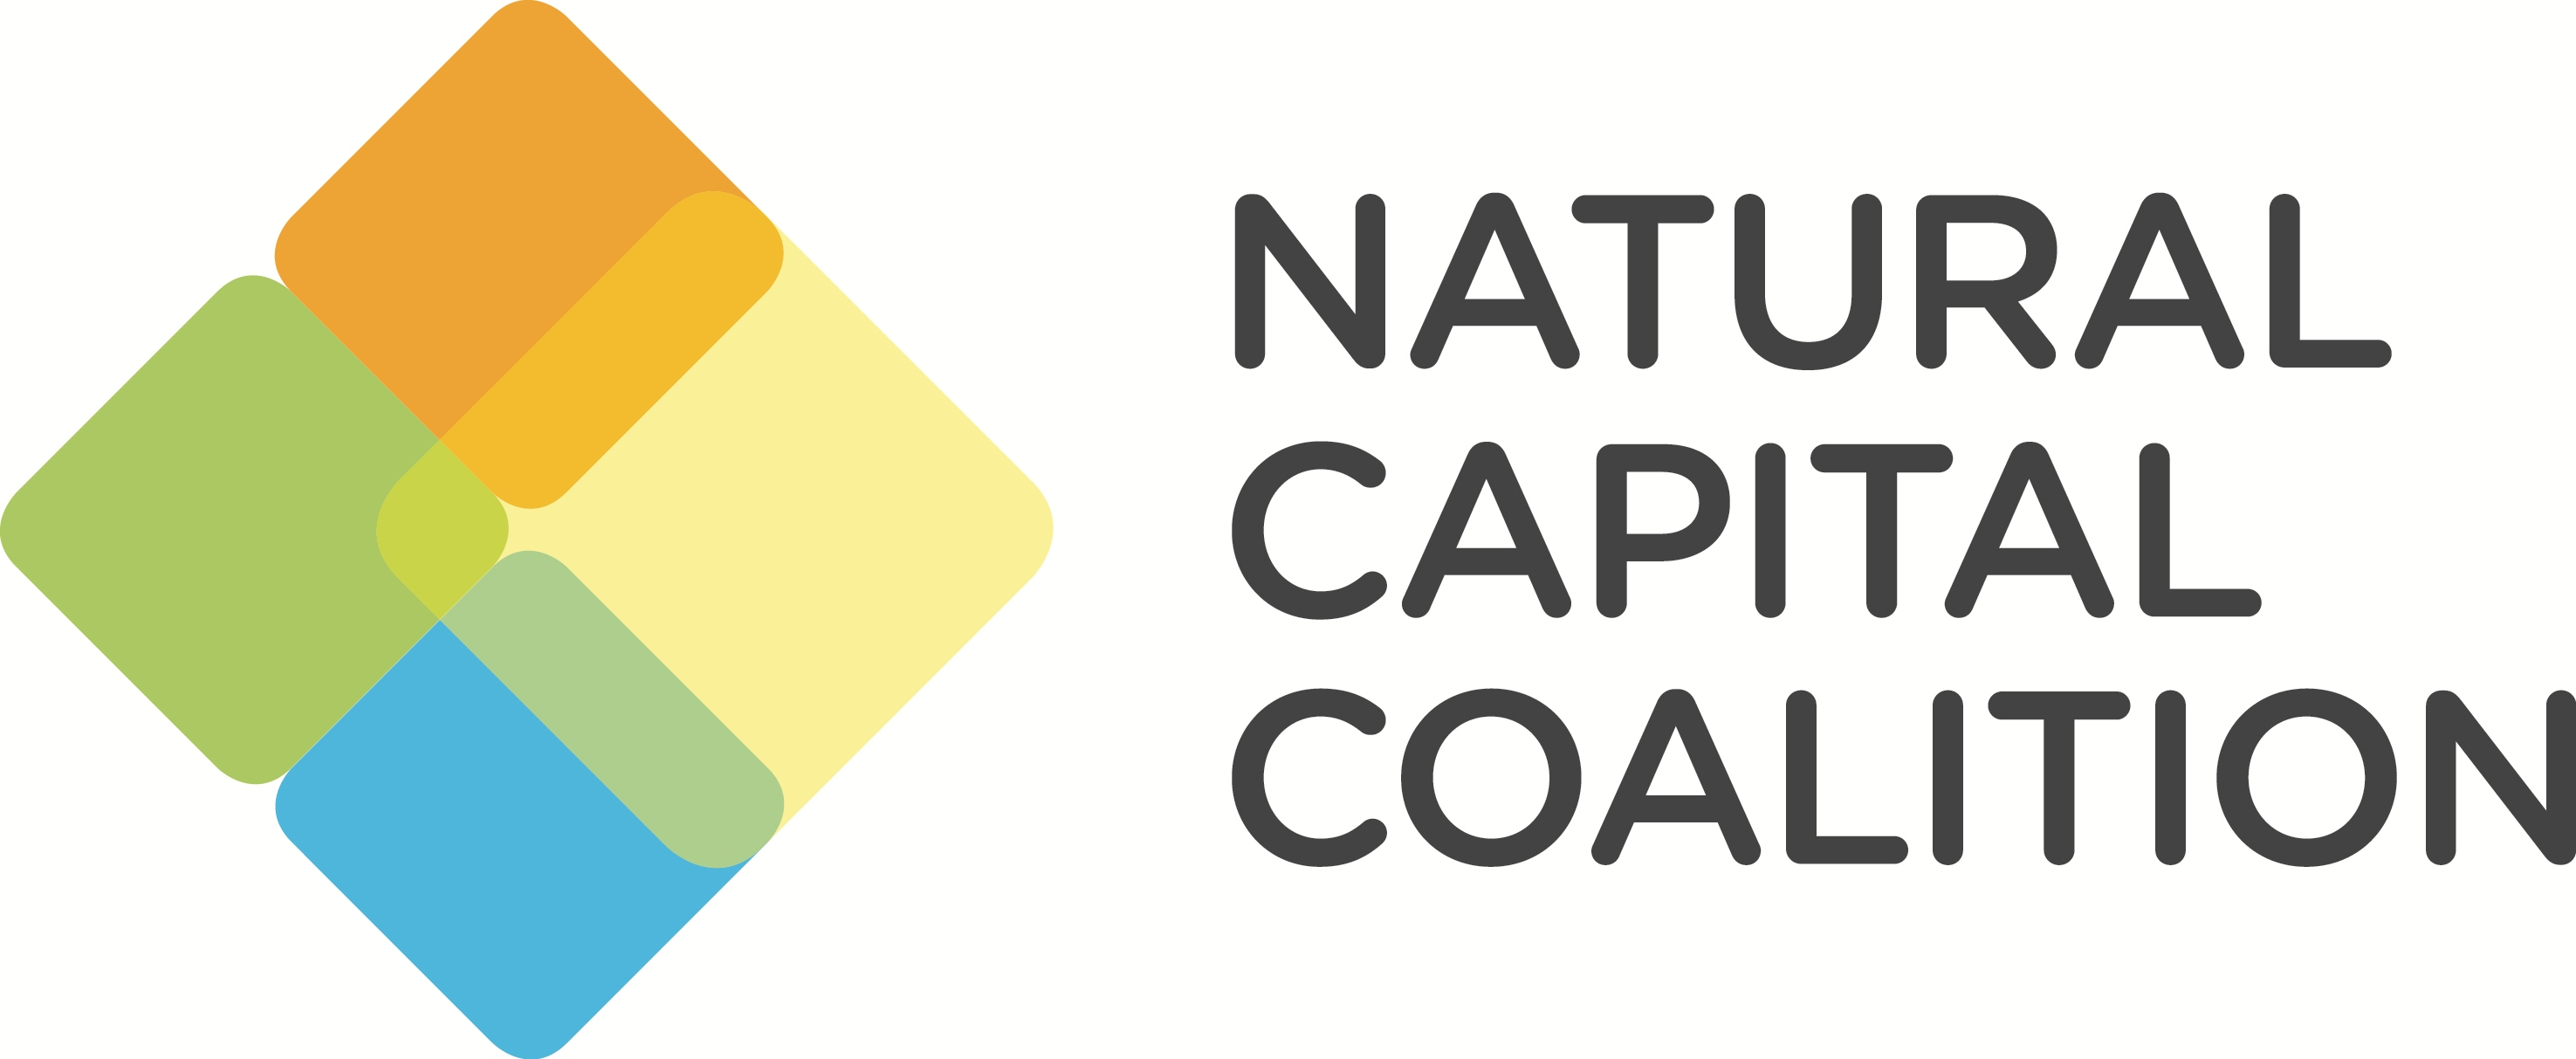 Natural Capital Coalition